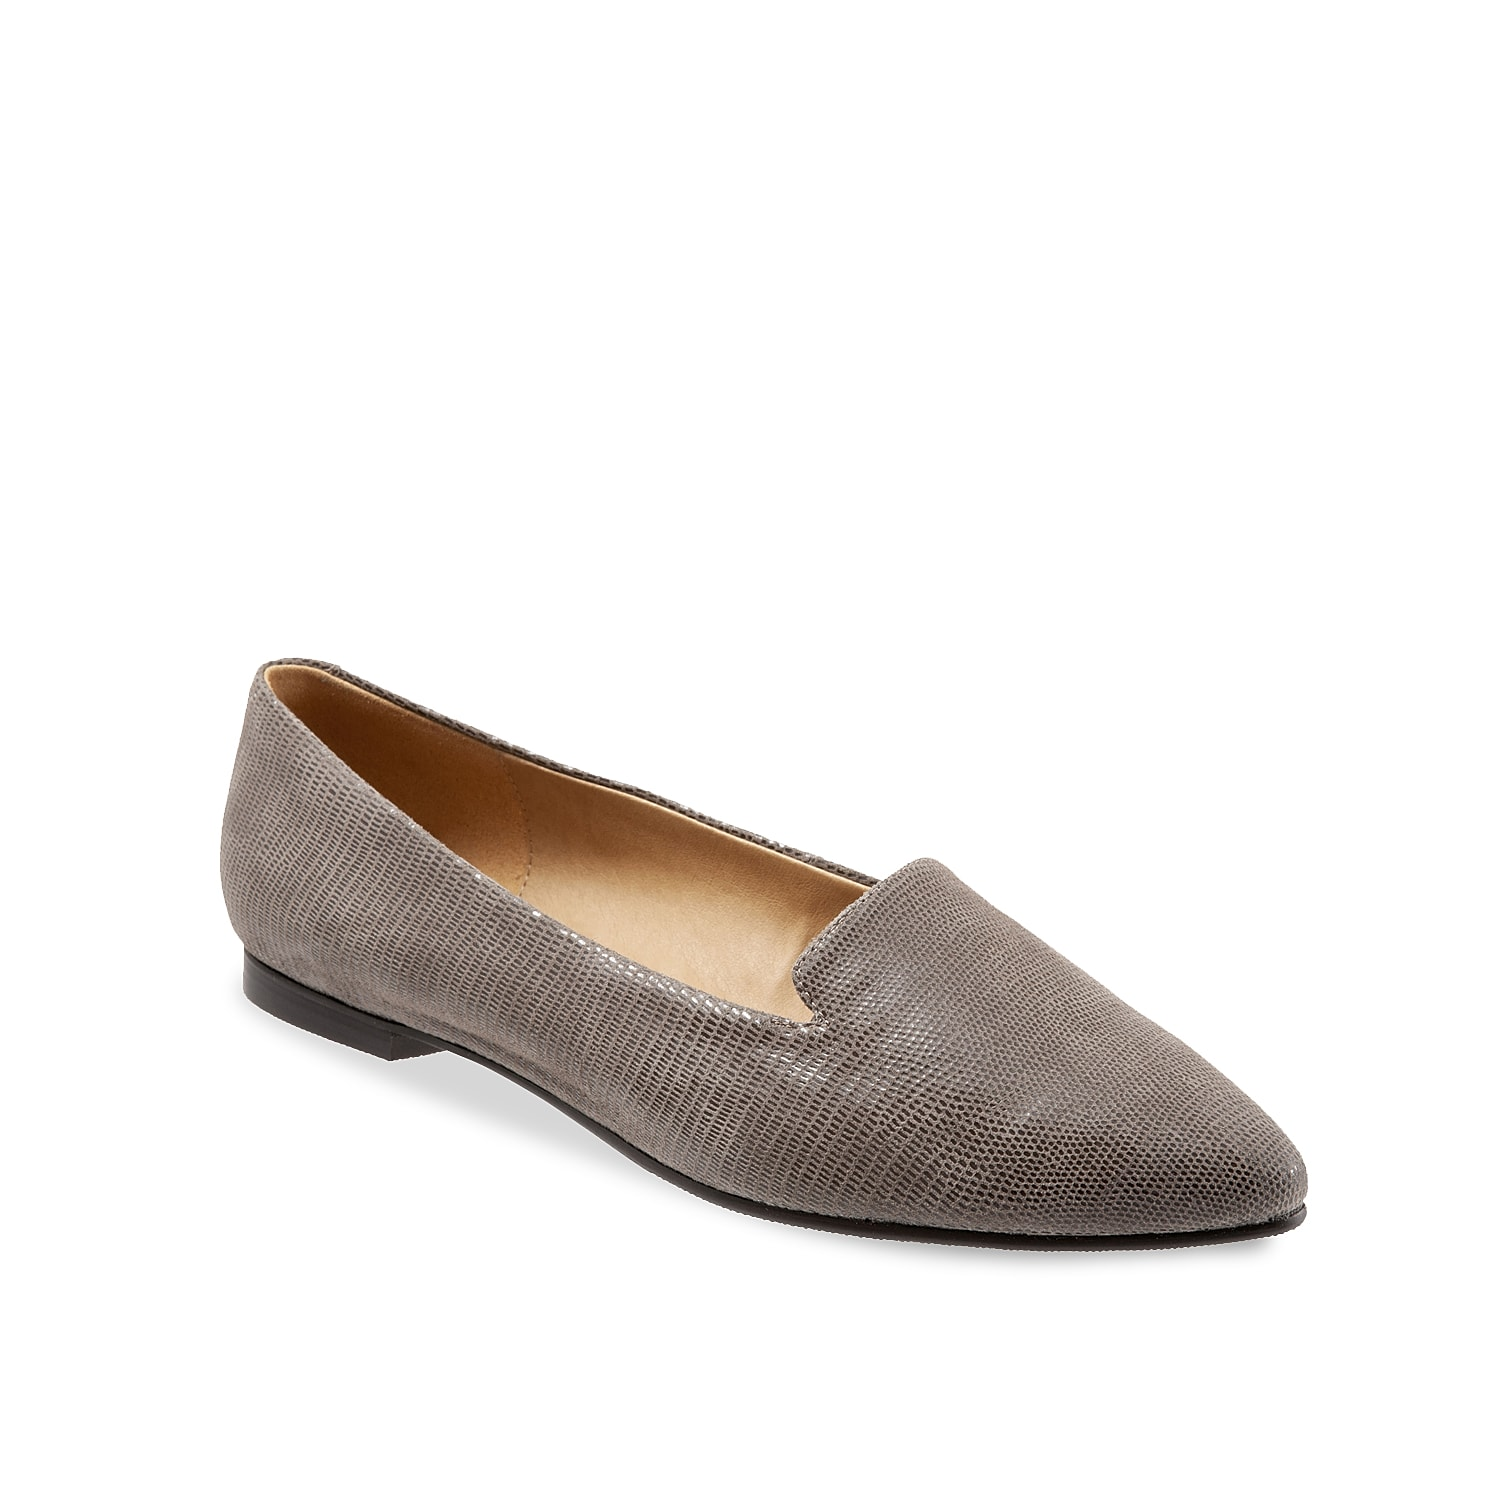 Add a statement to your shoe collection with the Harlowe flat from Trotters. This slip-on features a classic silhouette and textured leather that you can wear from work to happy hour!